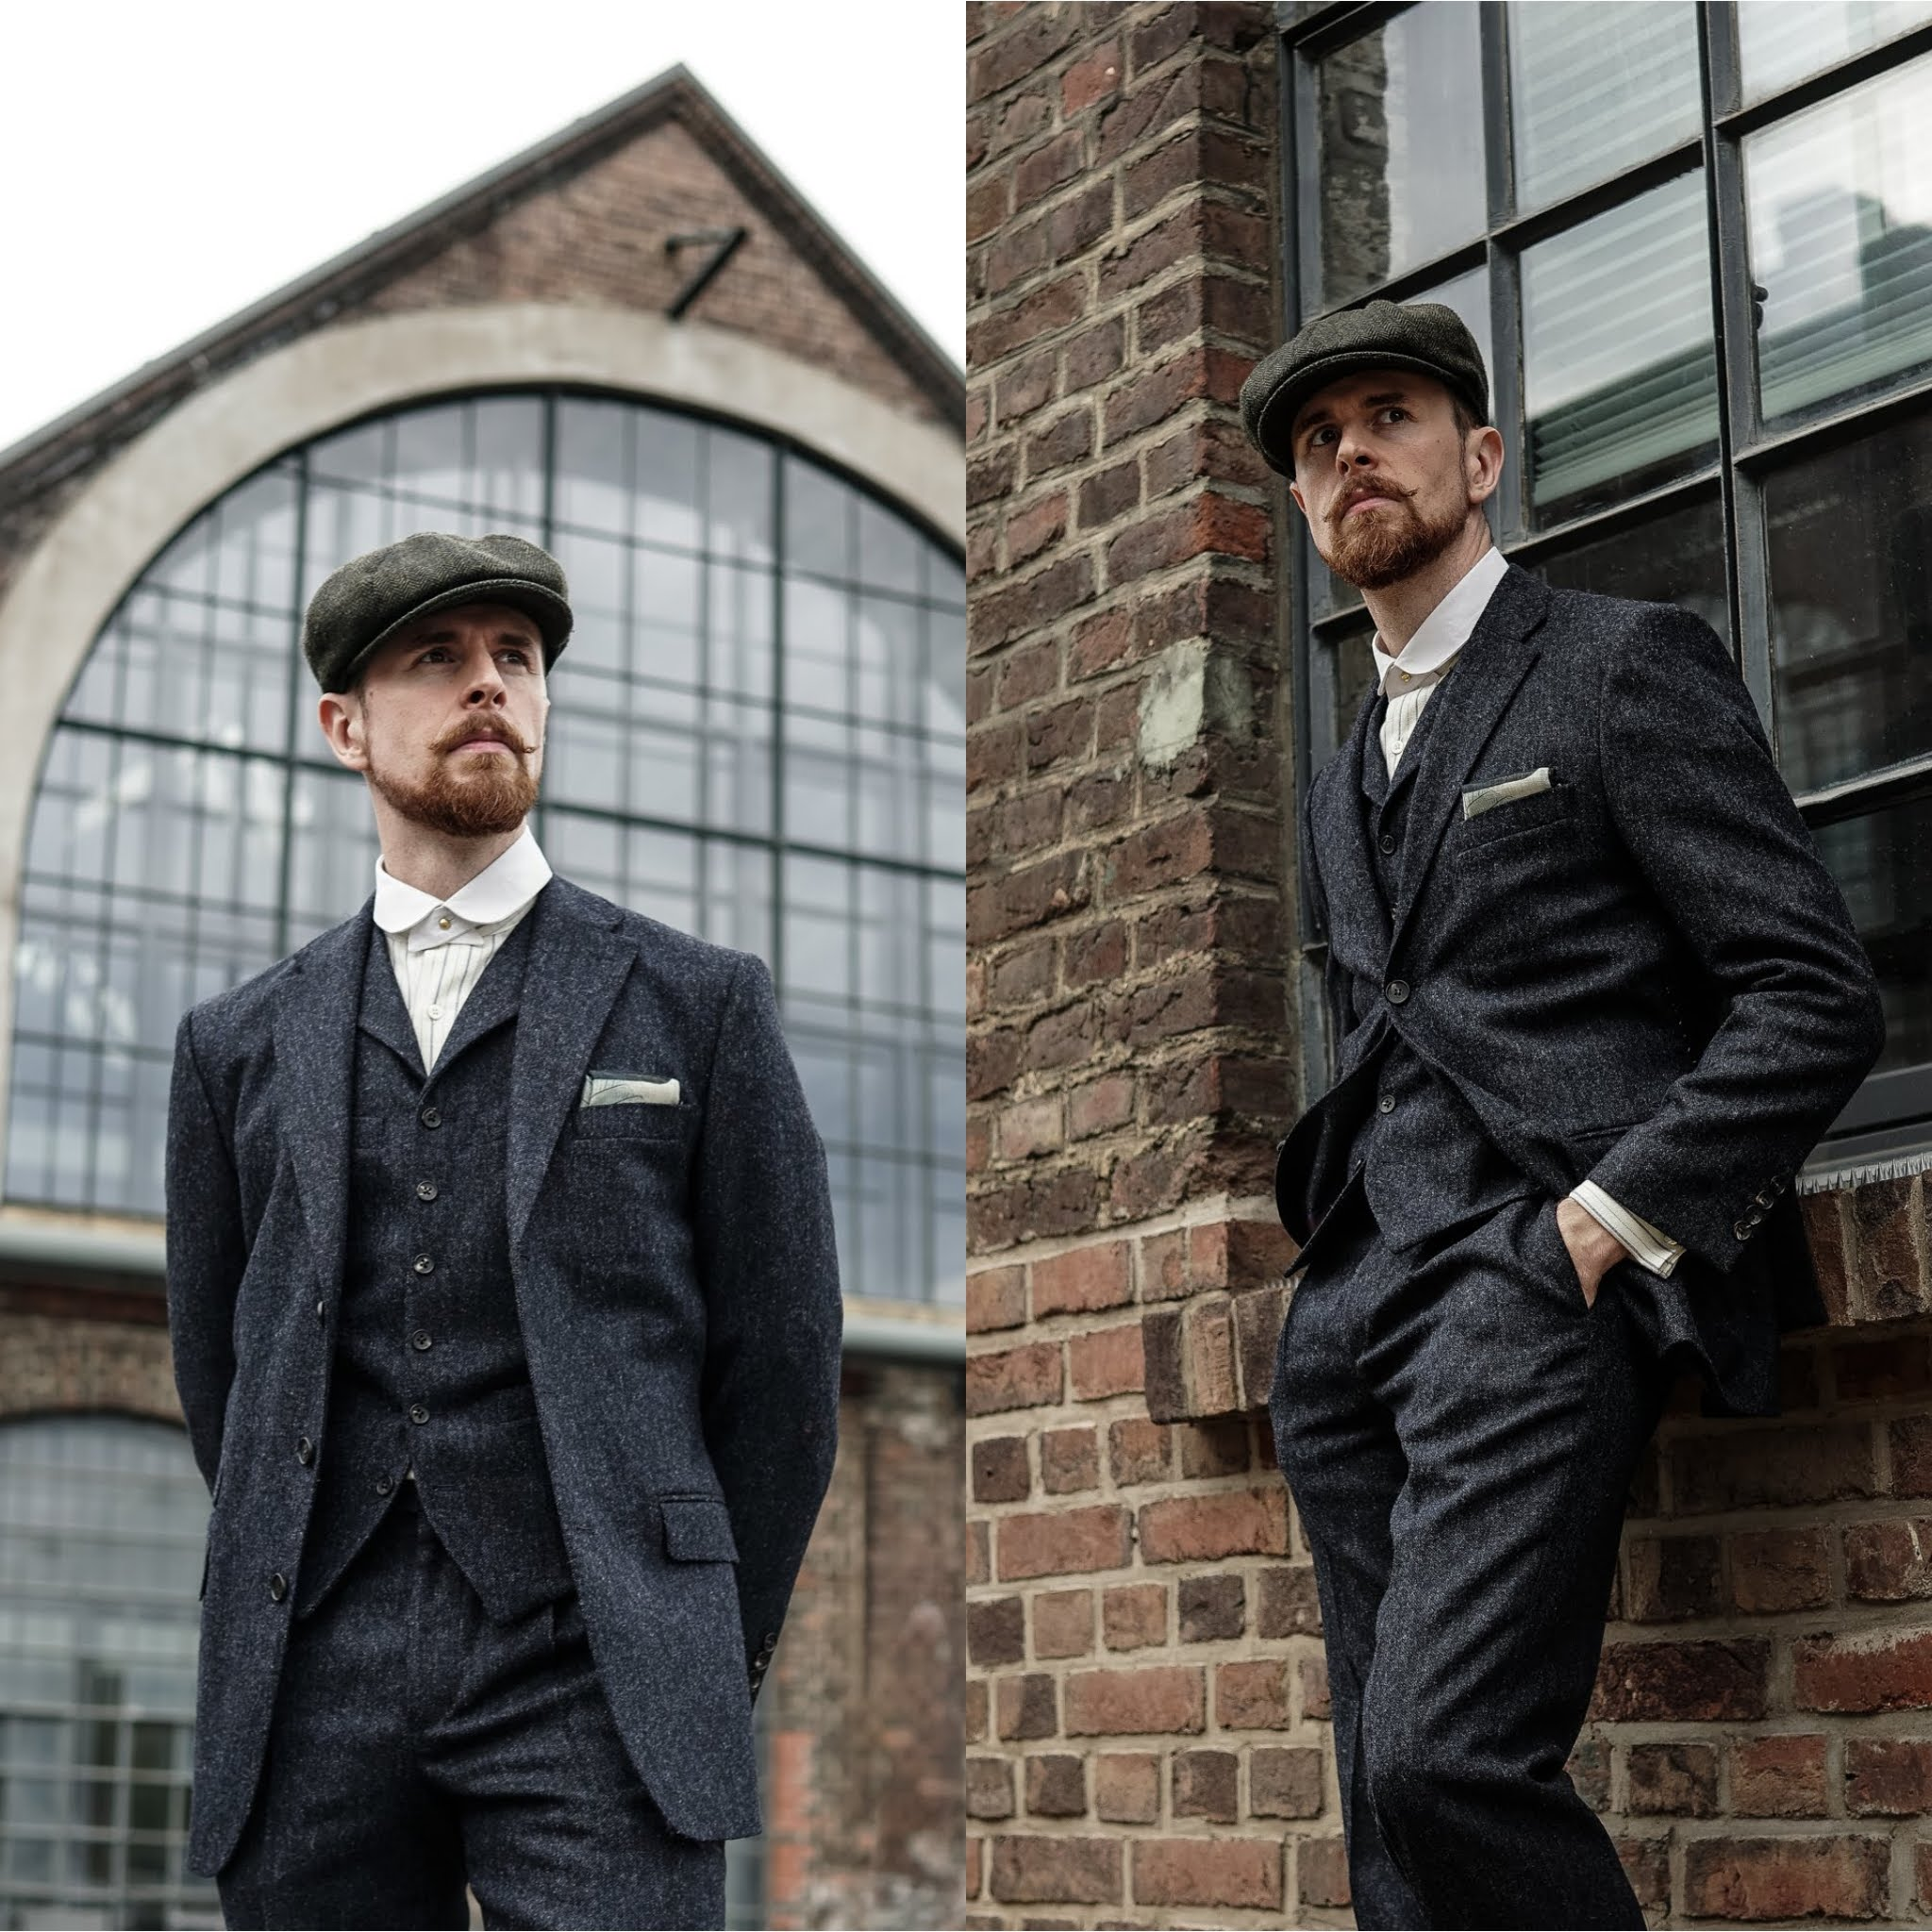 Das Peaky Blinders Outfit: Der Style der Shelby Brüder